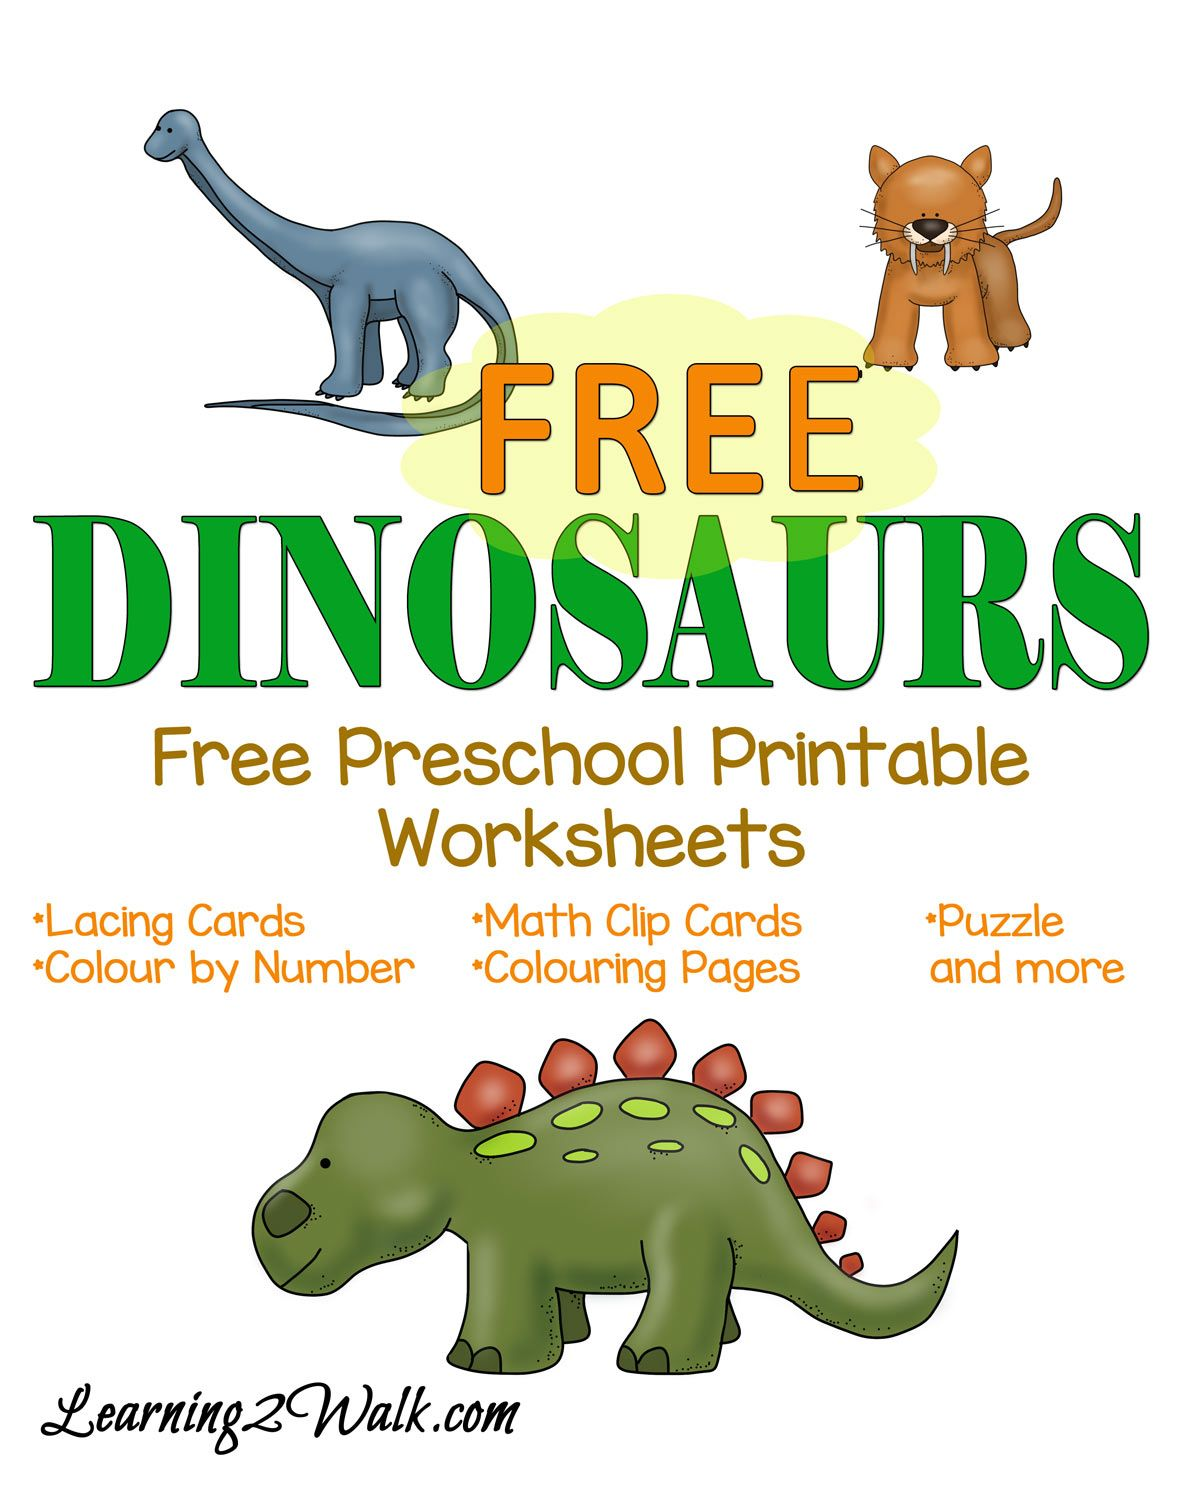 We Love Dinosaurs This Free Dinosaurs Preschool Printable